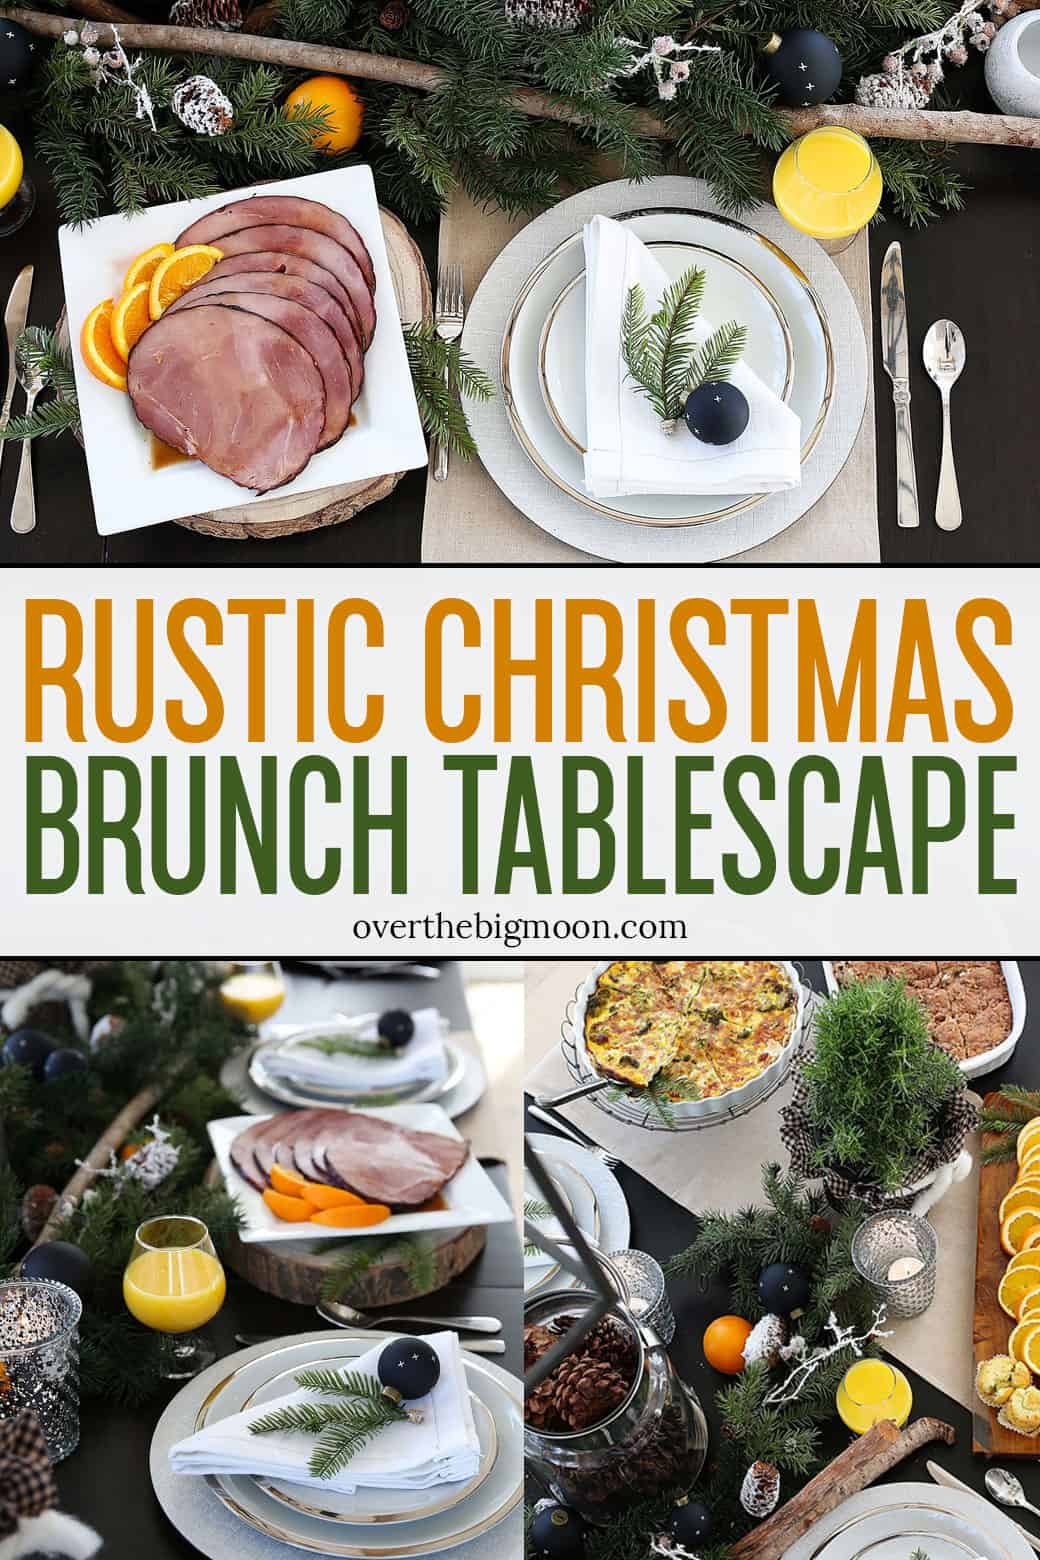 Christmas Brunch Menu.Christmas Brunch Menu Ideas Over The Big Moon